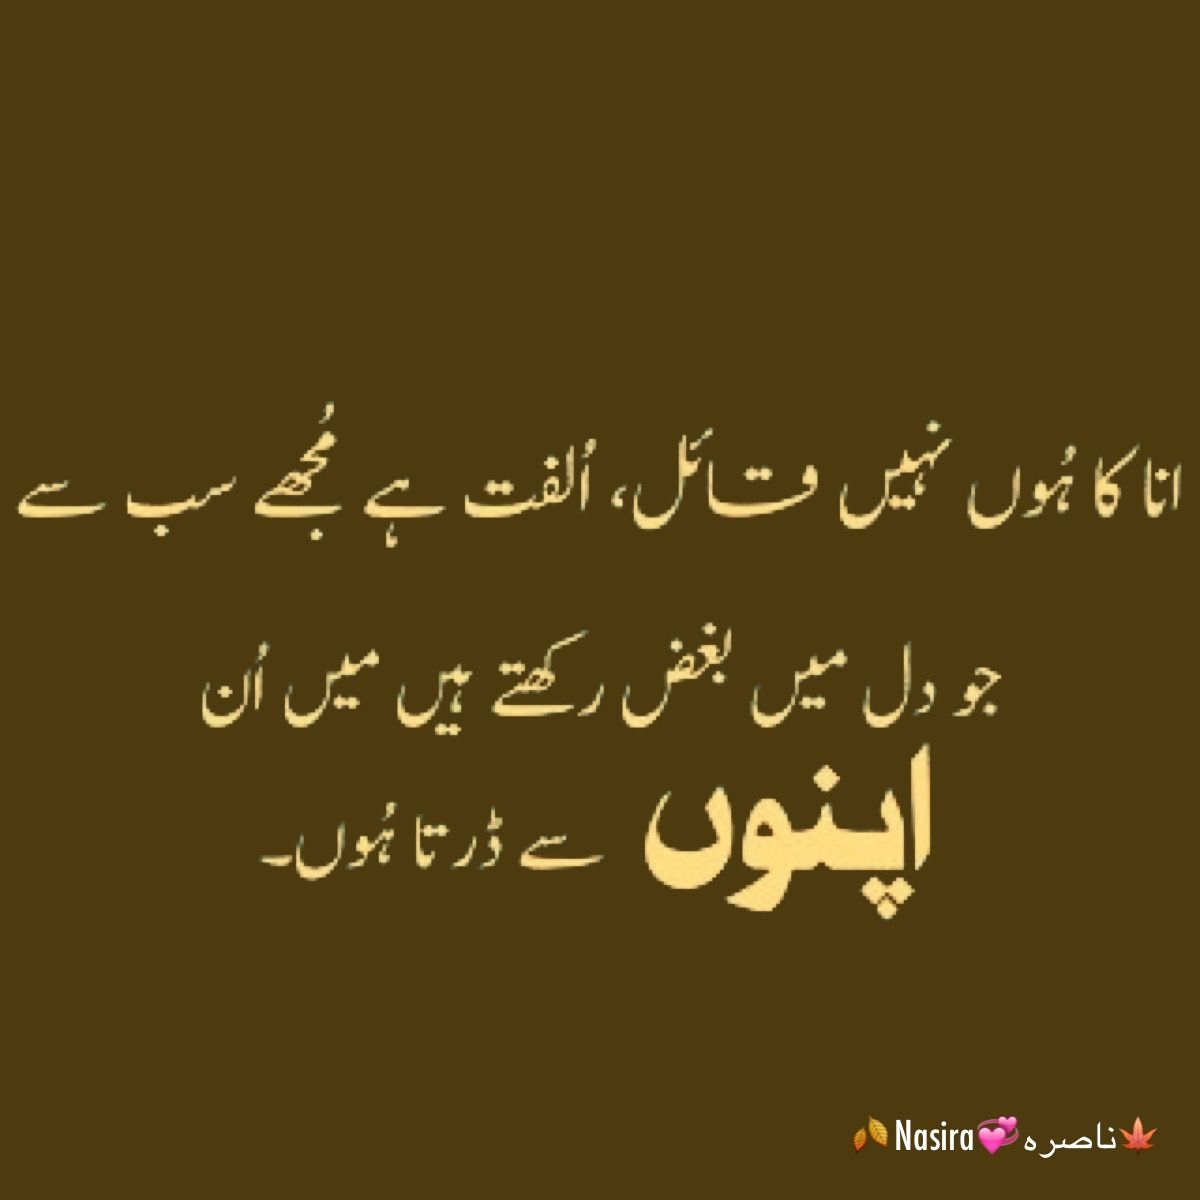 Pin By Nasira Ahmad On Awesome Urdu Quotes & Poetry